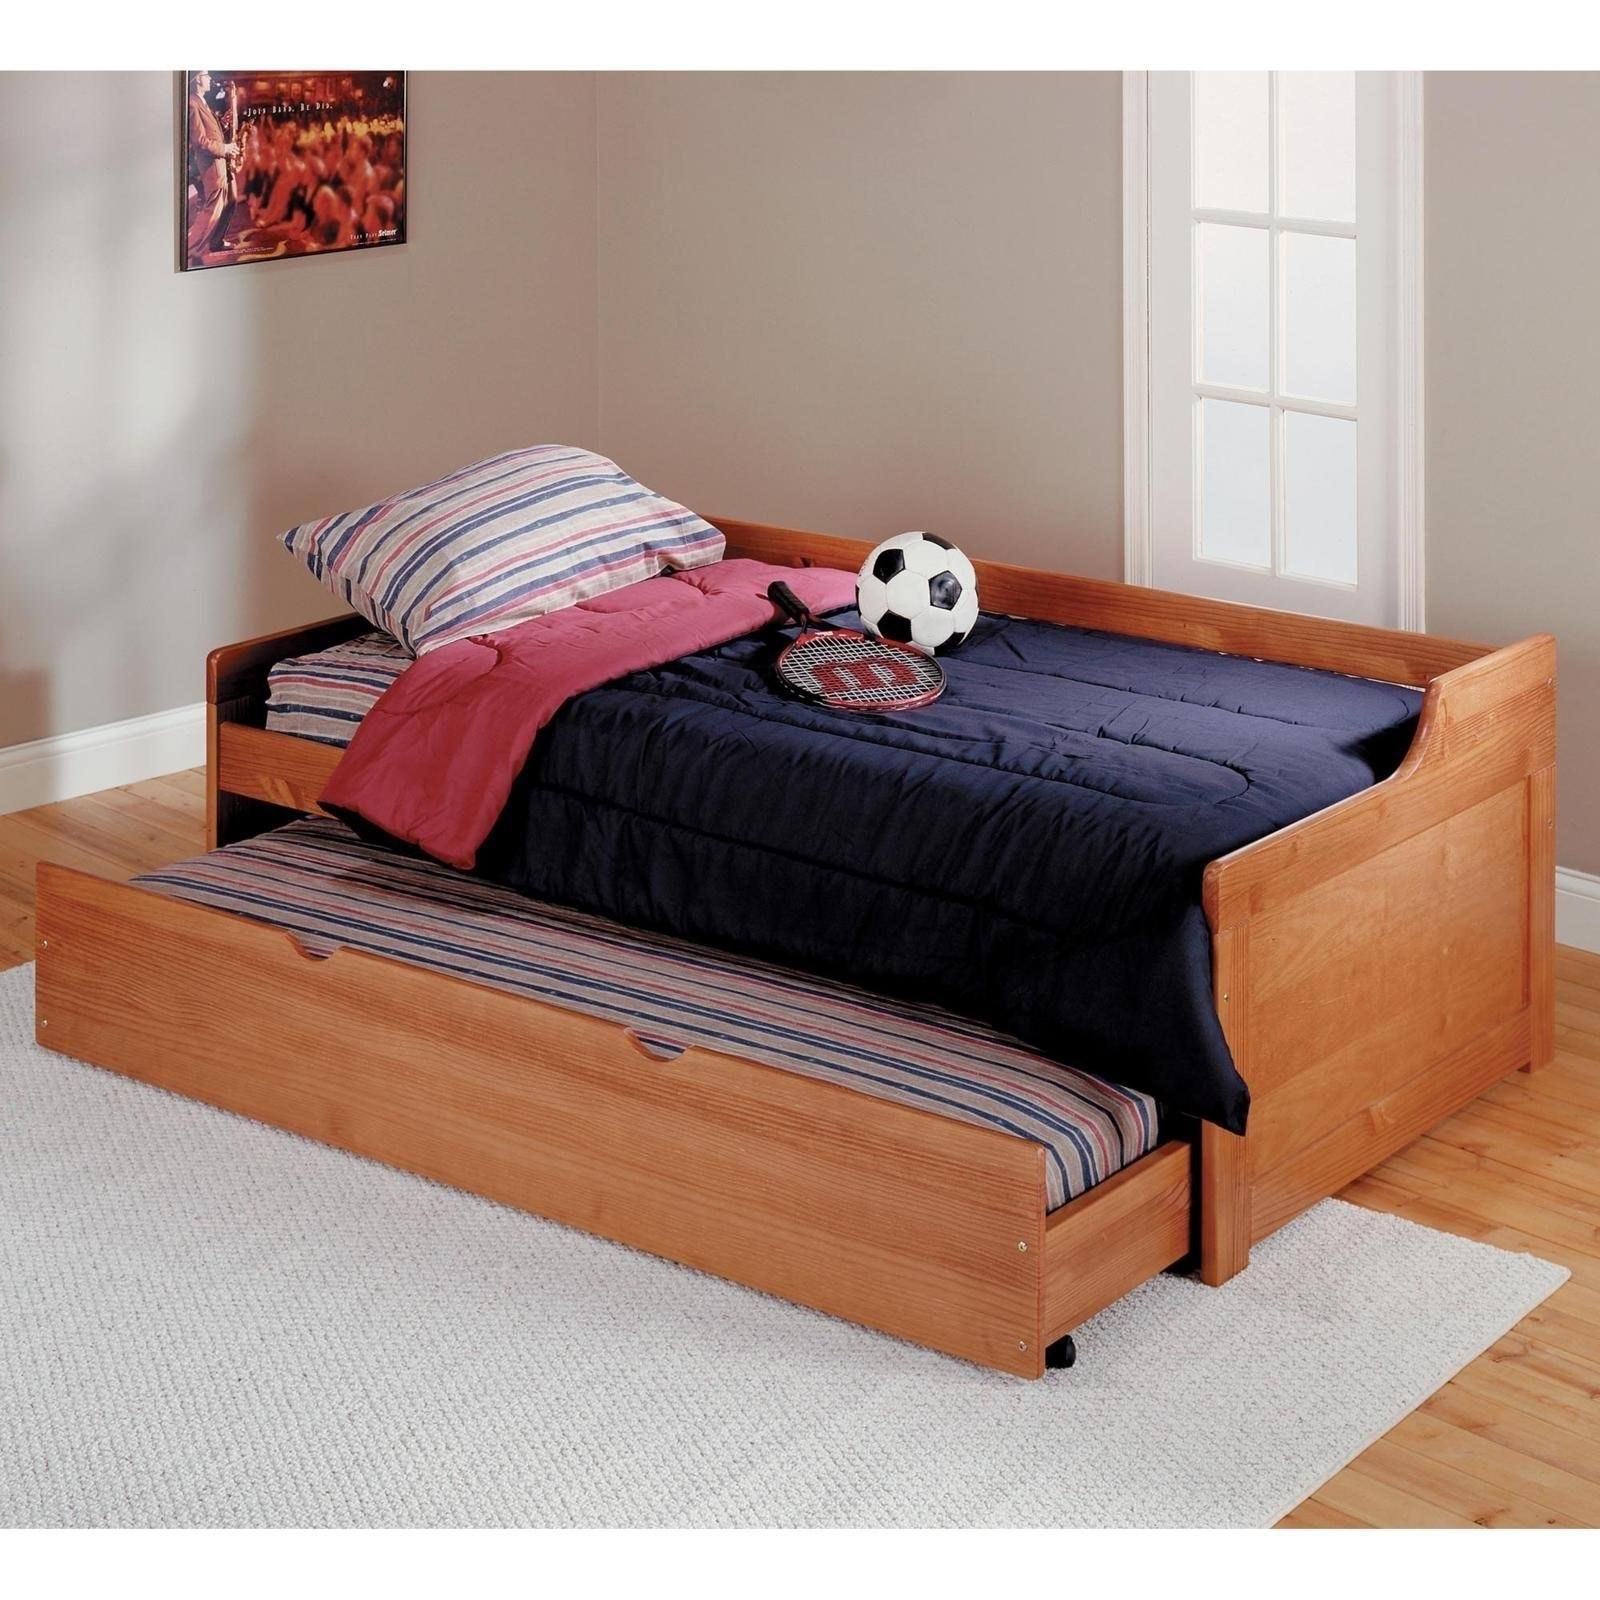 Beds Daybeds And Trundle Beds Pics With Mesmerizing Trundle Daybed Intended For Sofa Day Beds (View 17 of 20)